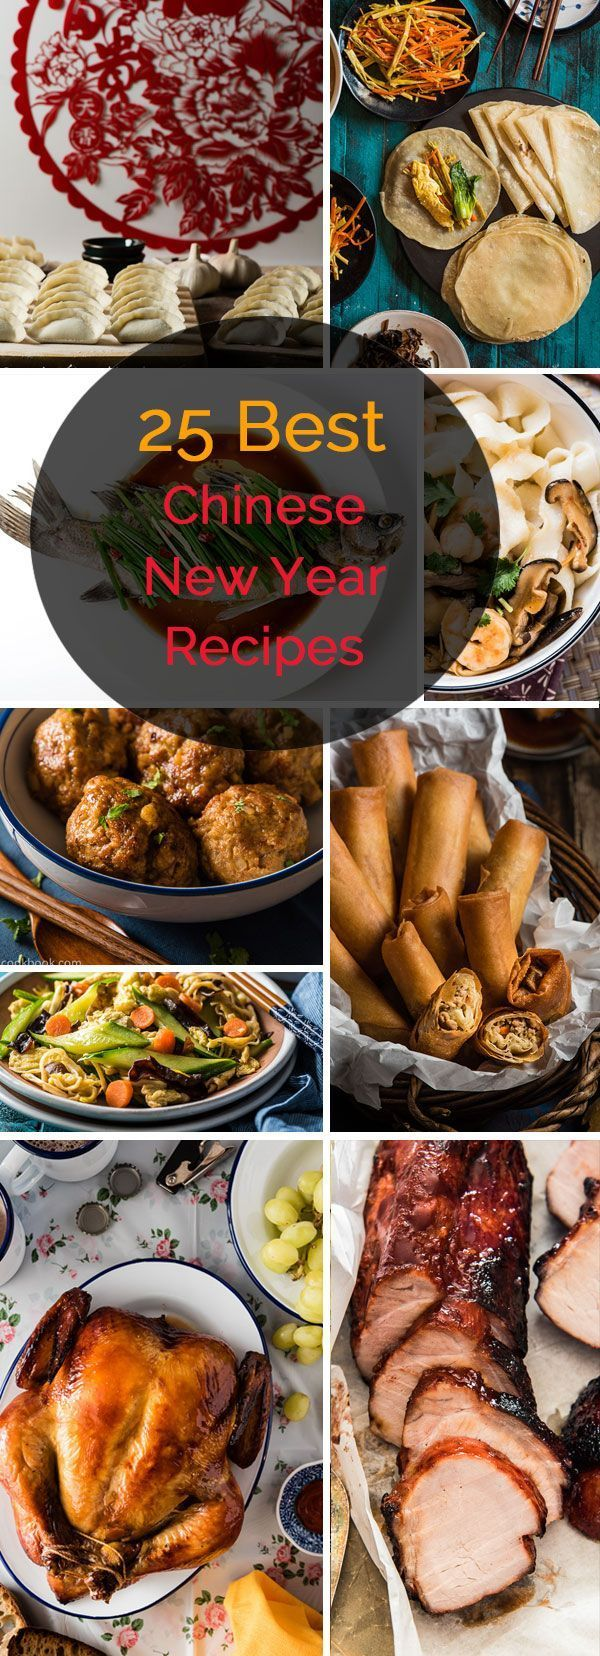 Top 25 Chinese New Year Recipes | http://omnivorescookbook.com